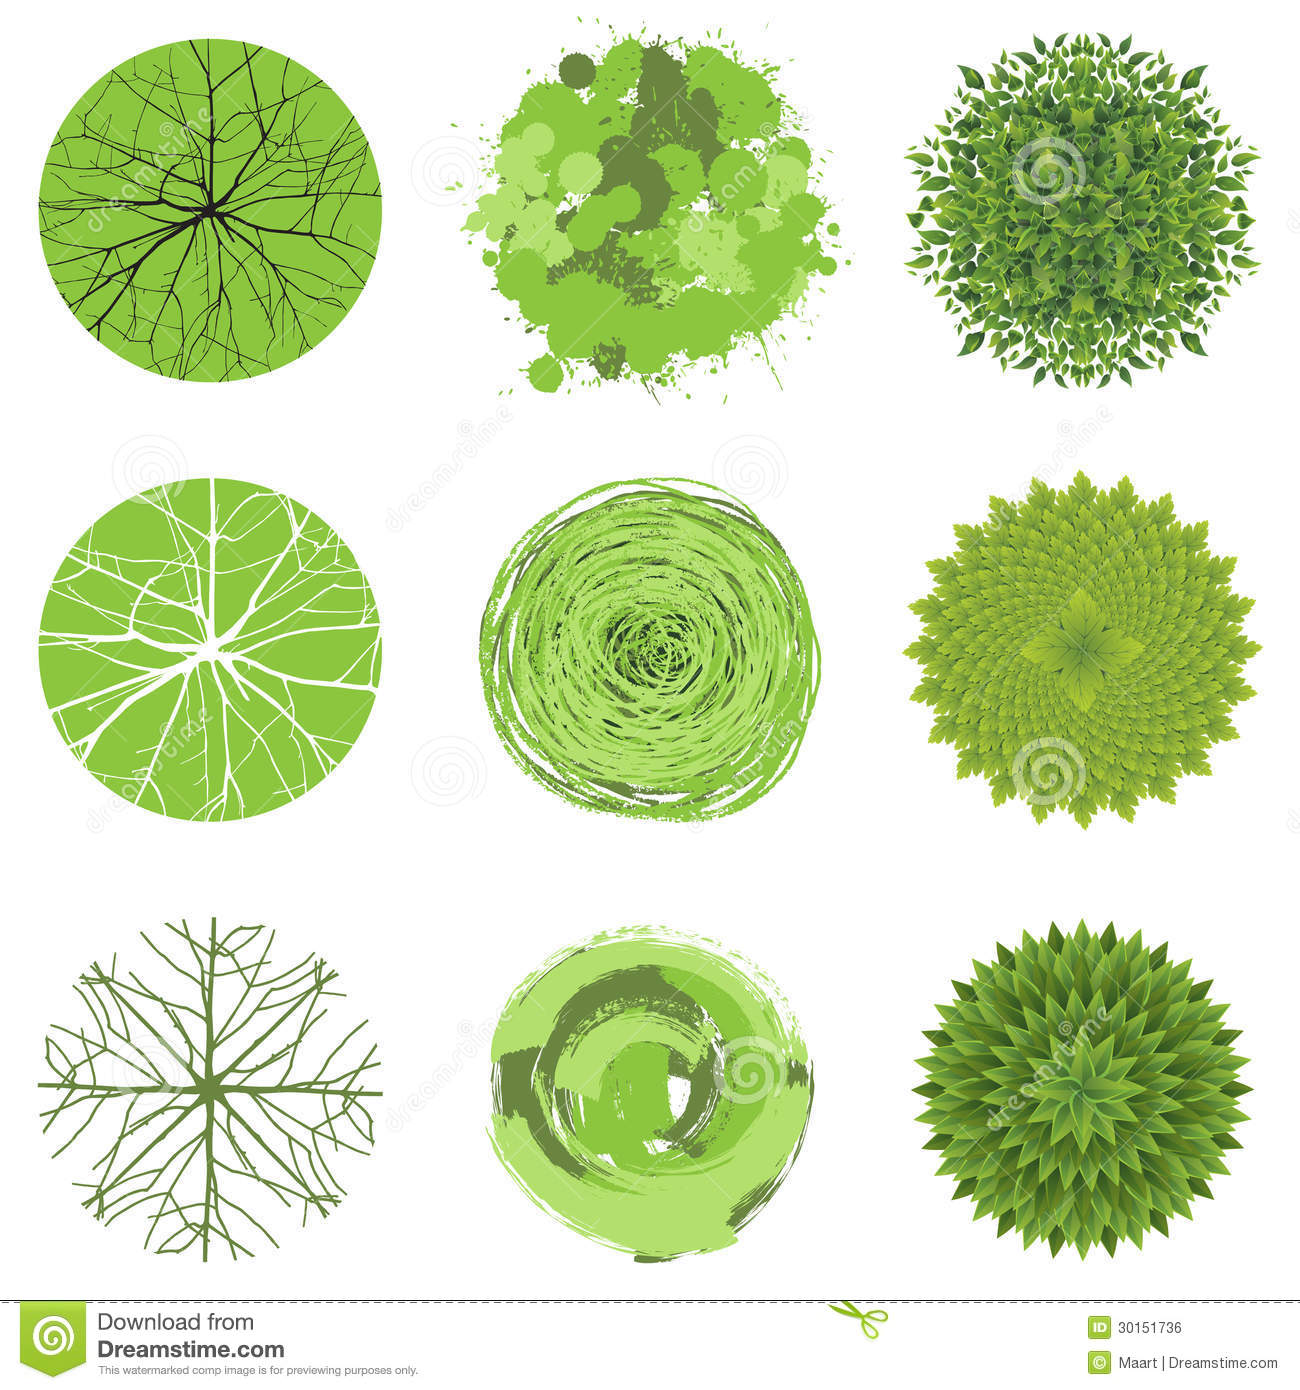 Set Of Trees And Shrubs. Top View. Stock Vector - Illustration of ... for tree drawing top view  150ifm